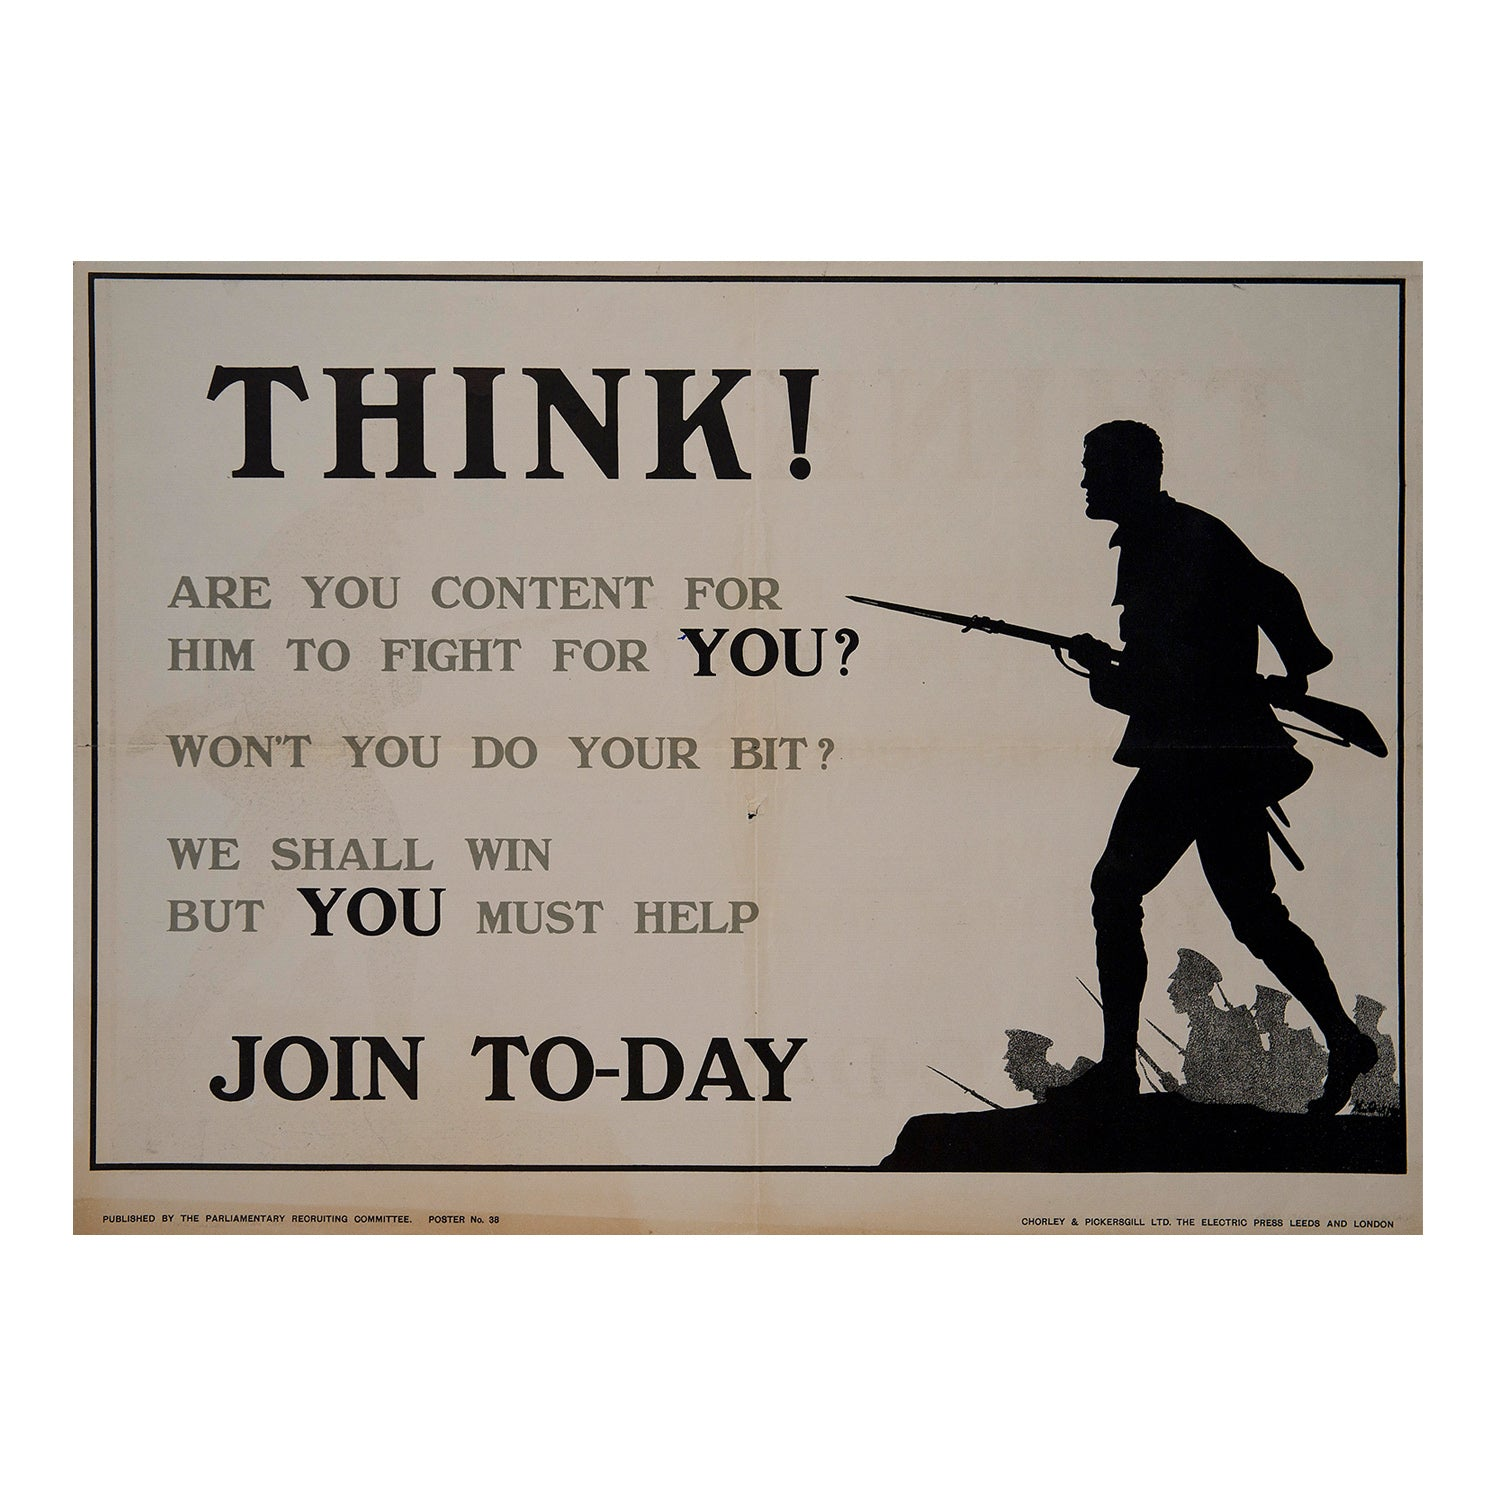 Think ! Are you content for him to fight for You ?